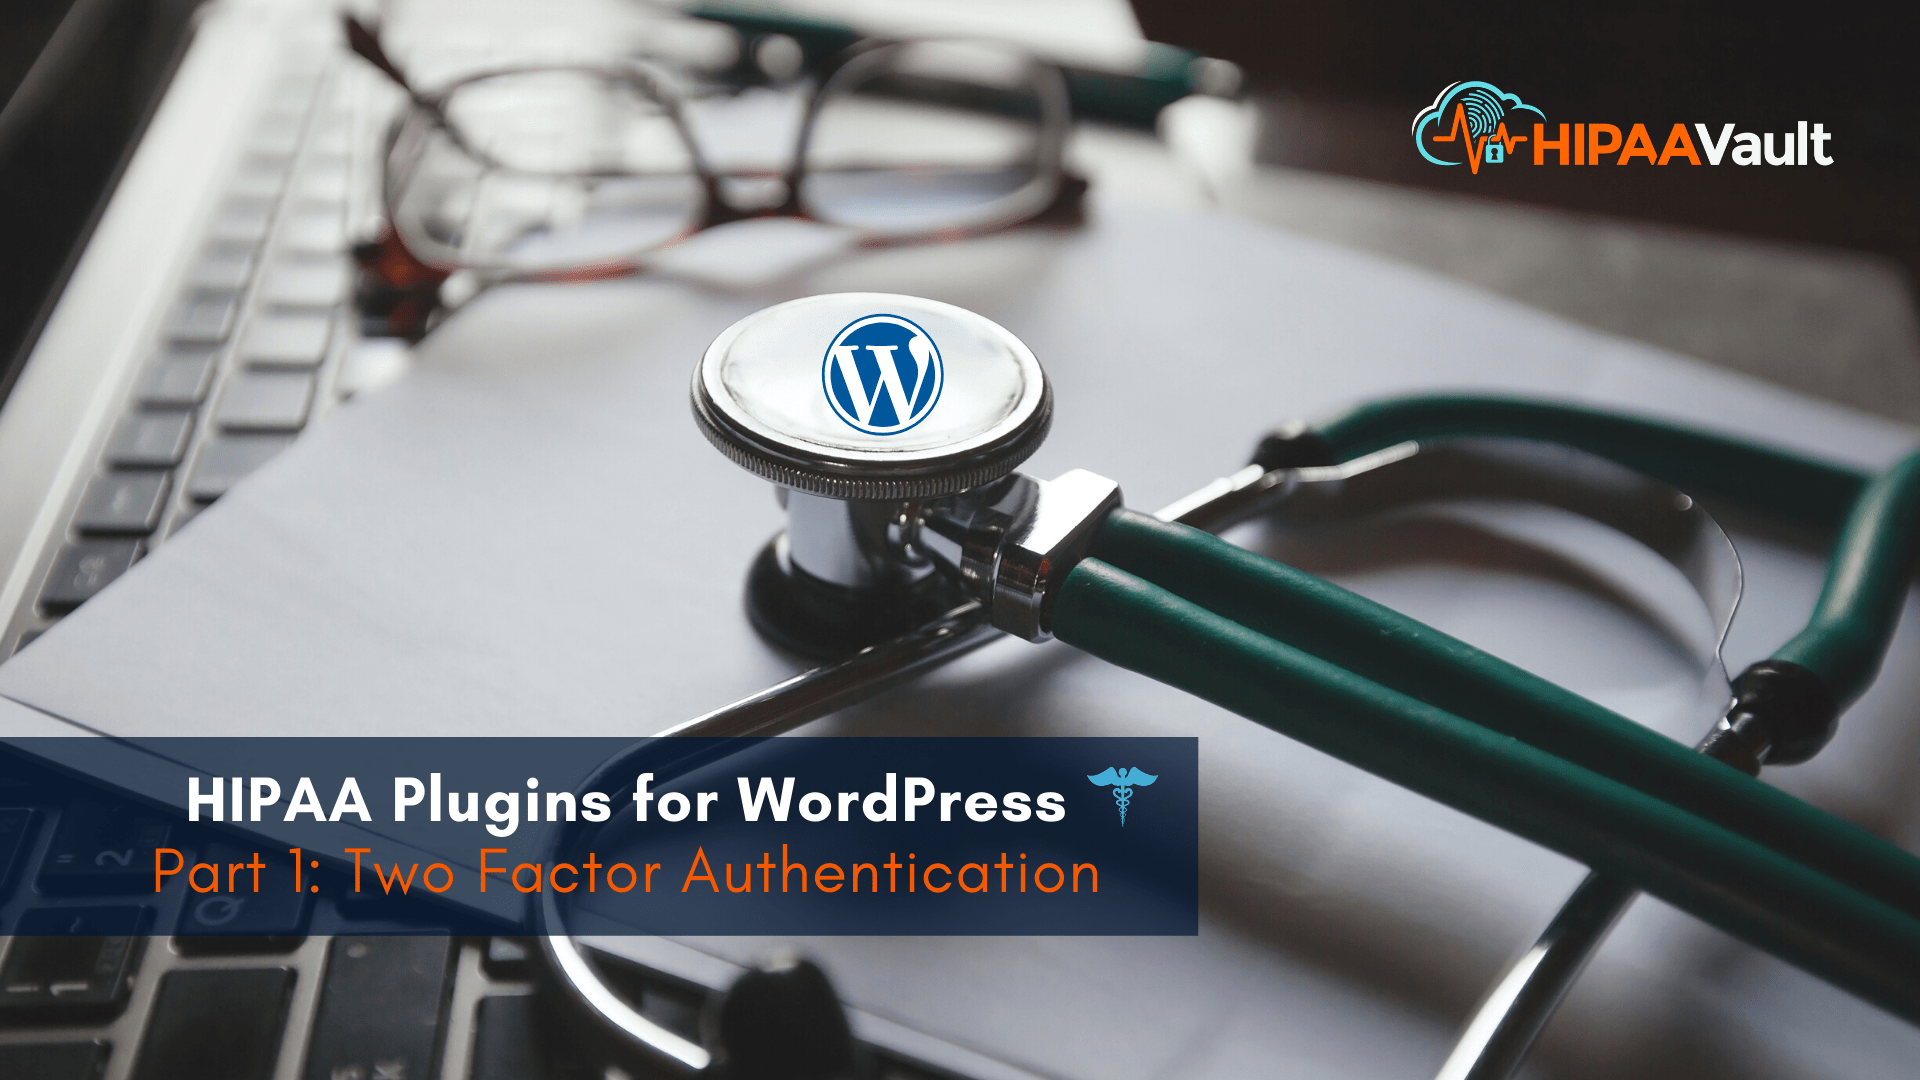 HIPAA Plugins for WordPress – Part 1: Two Factor Authentication